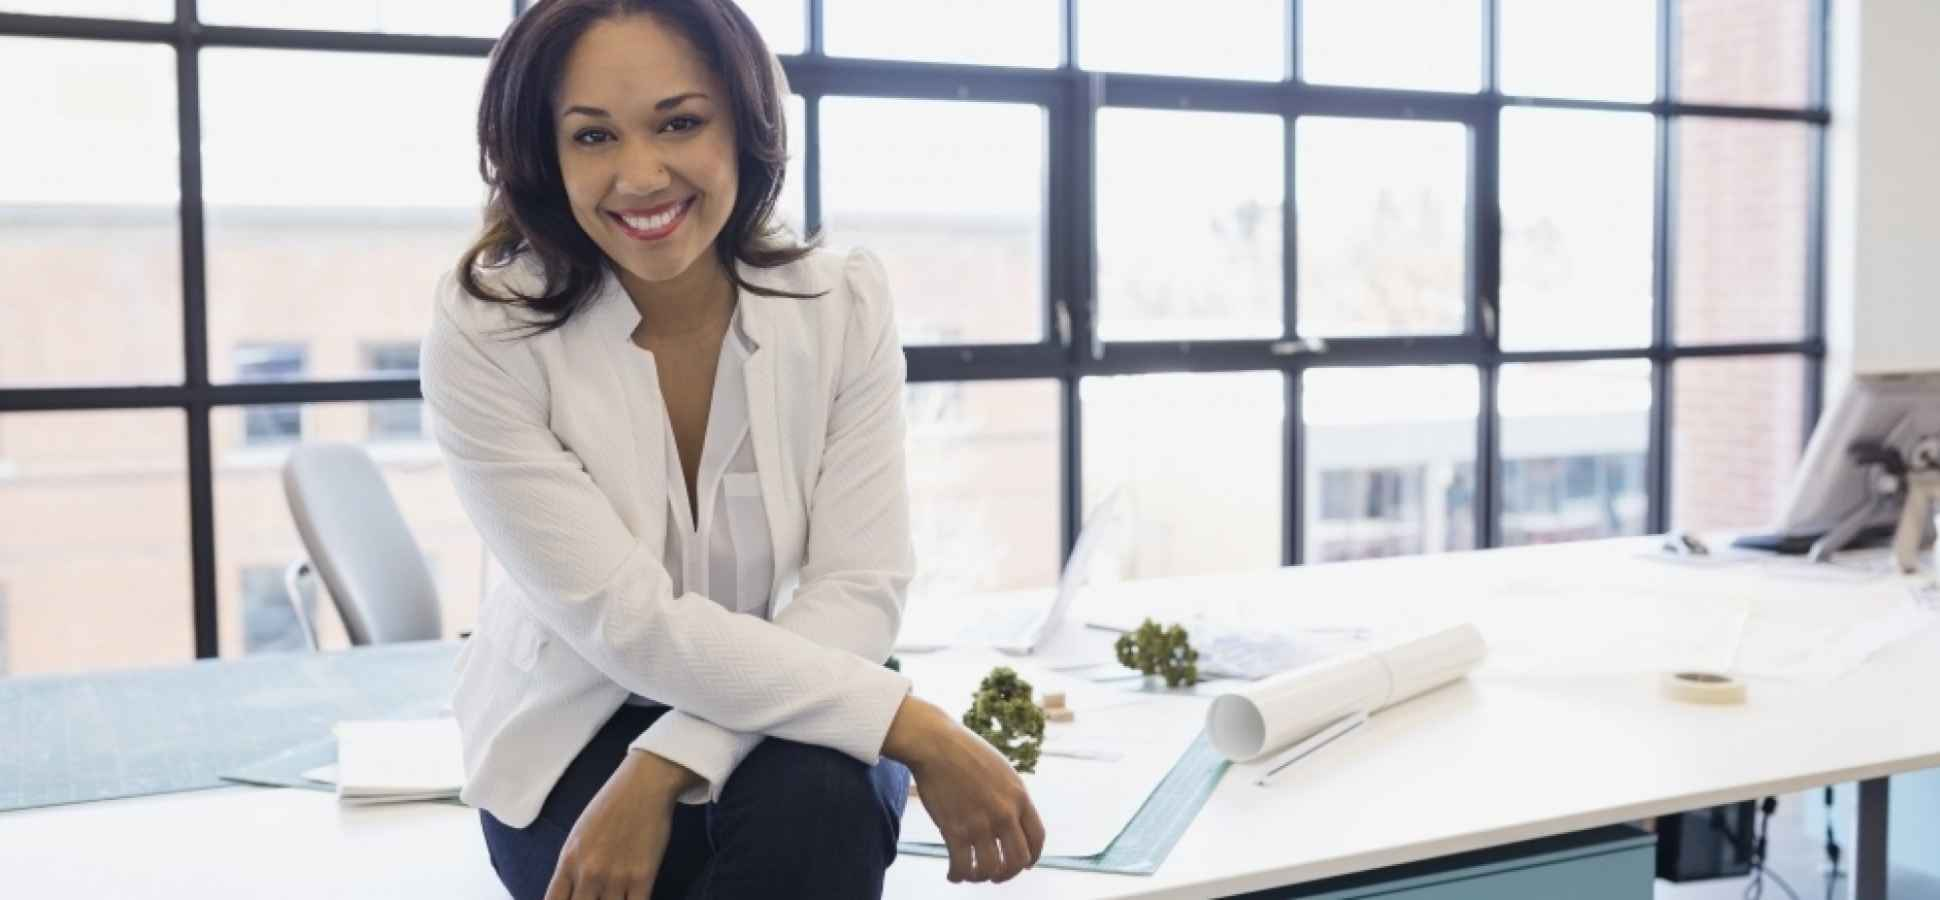 5 Things You Don't Need To Tell Successful Women